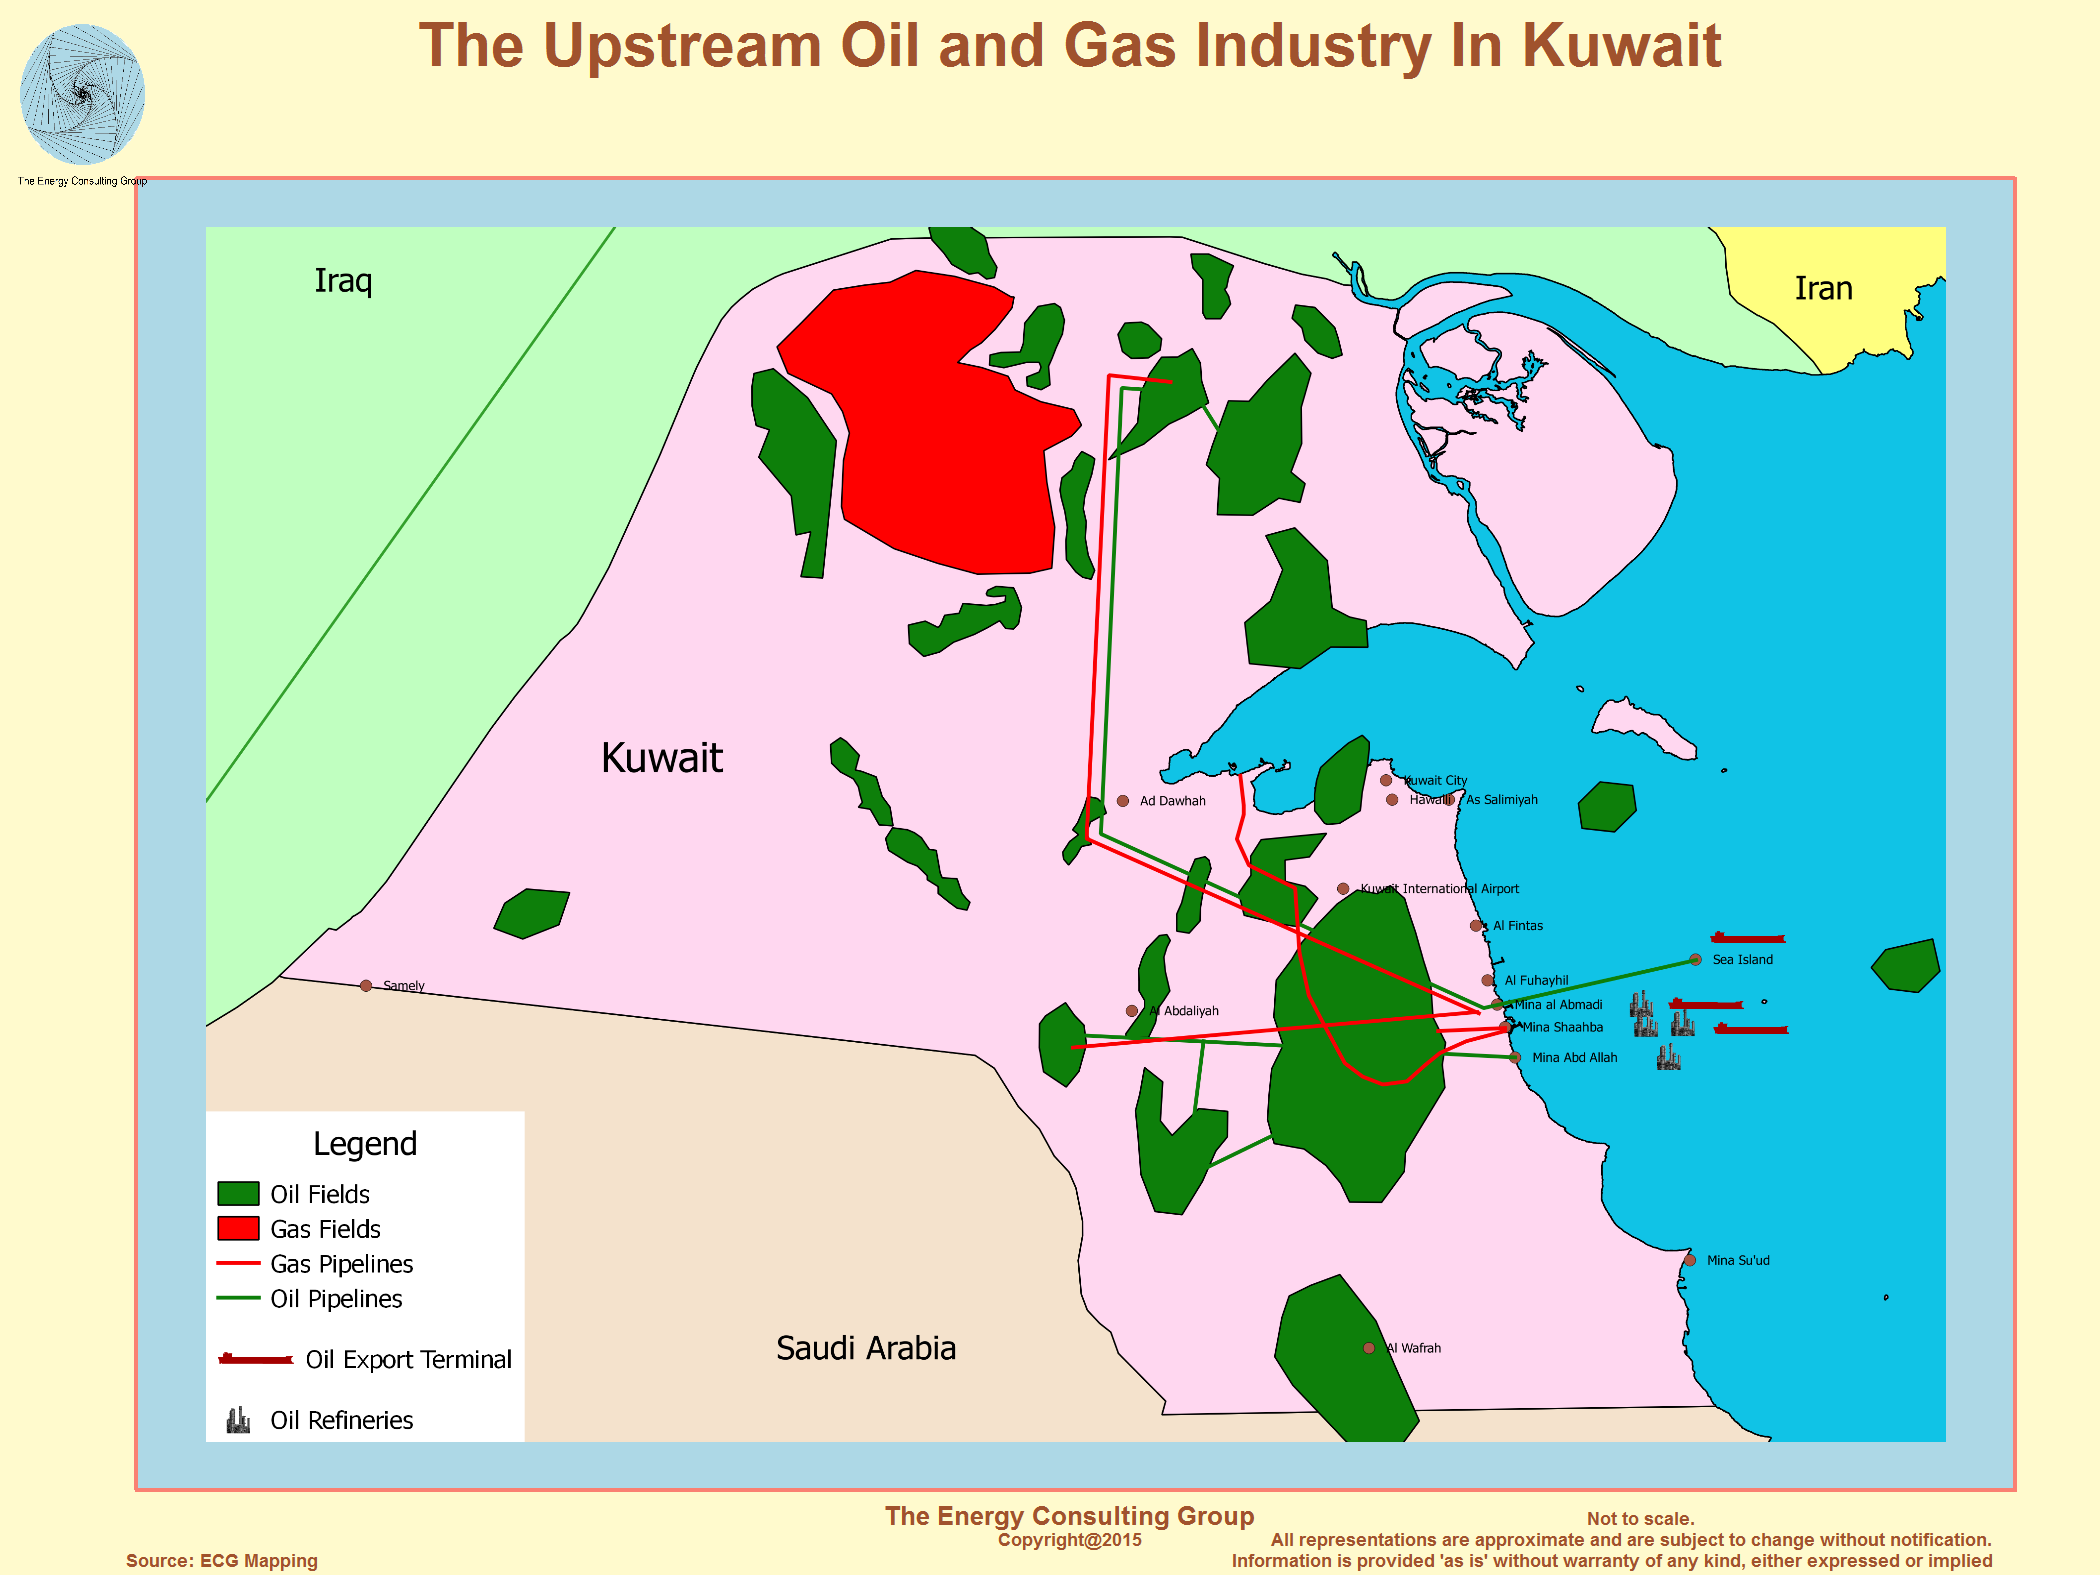 kuwait oil and gas industry q2 Oil and gas explorer kuwait energy has reported a revenue of us$776mn for q2 2013, up 52 per cent on the same period last year.